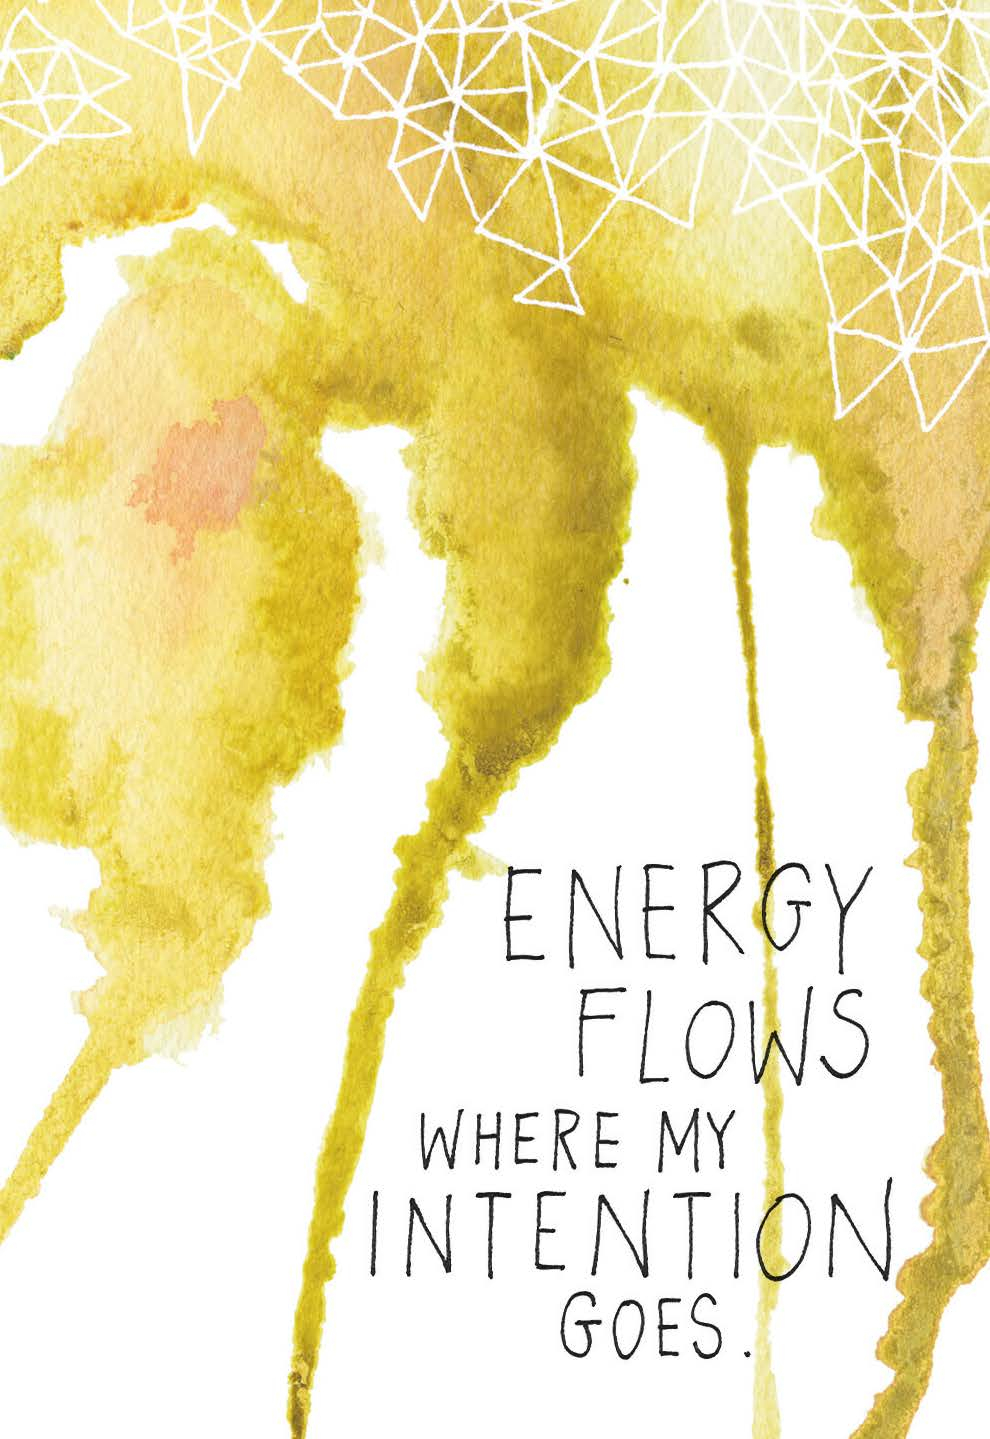 Energy flows where my intention goes